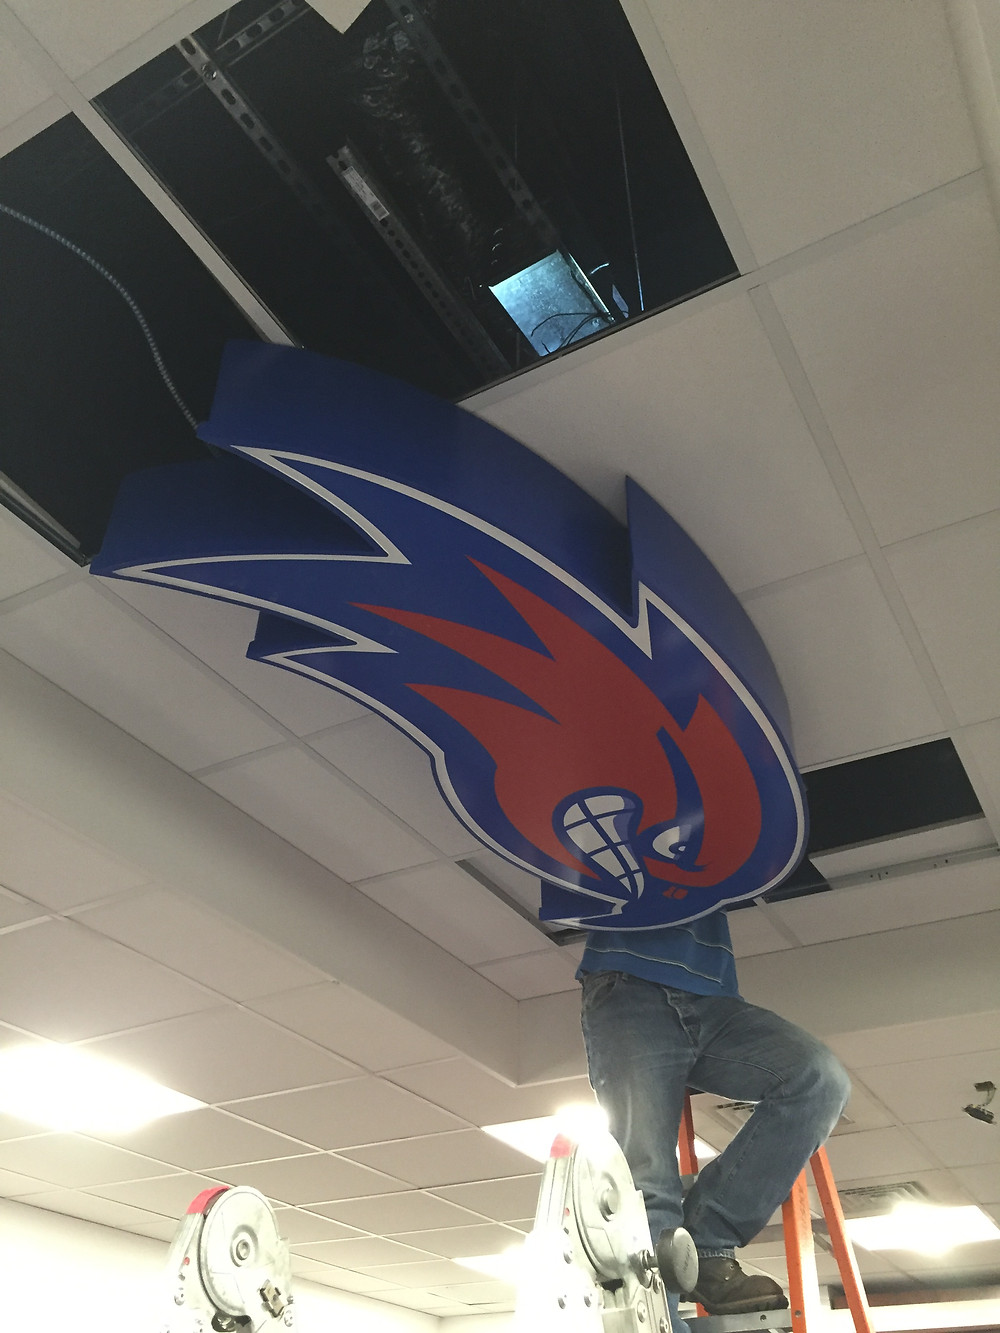 The Mass Logo River Hawk sign comes to life...